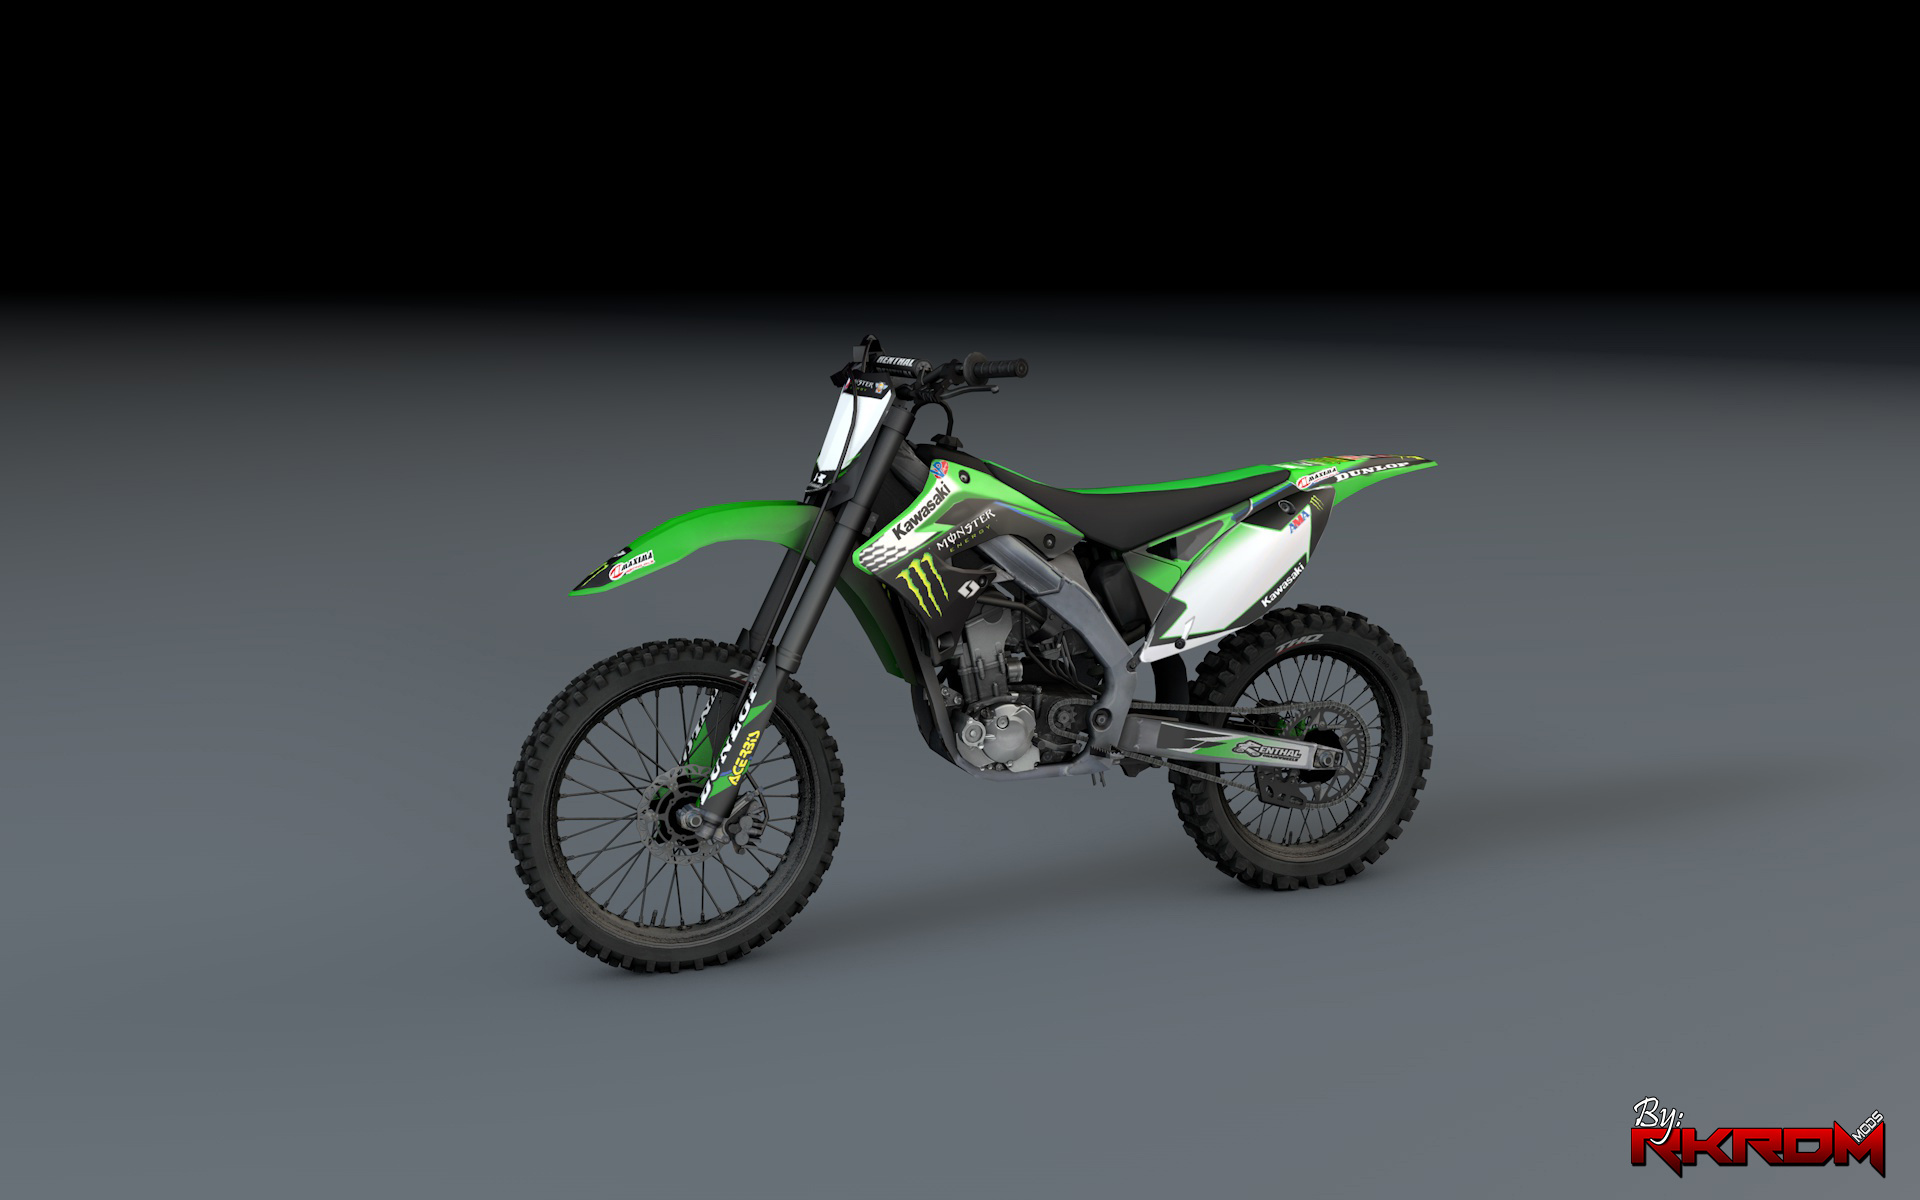 Kawasaki Kx450f Monster Energy Livery Gta5 Modscom